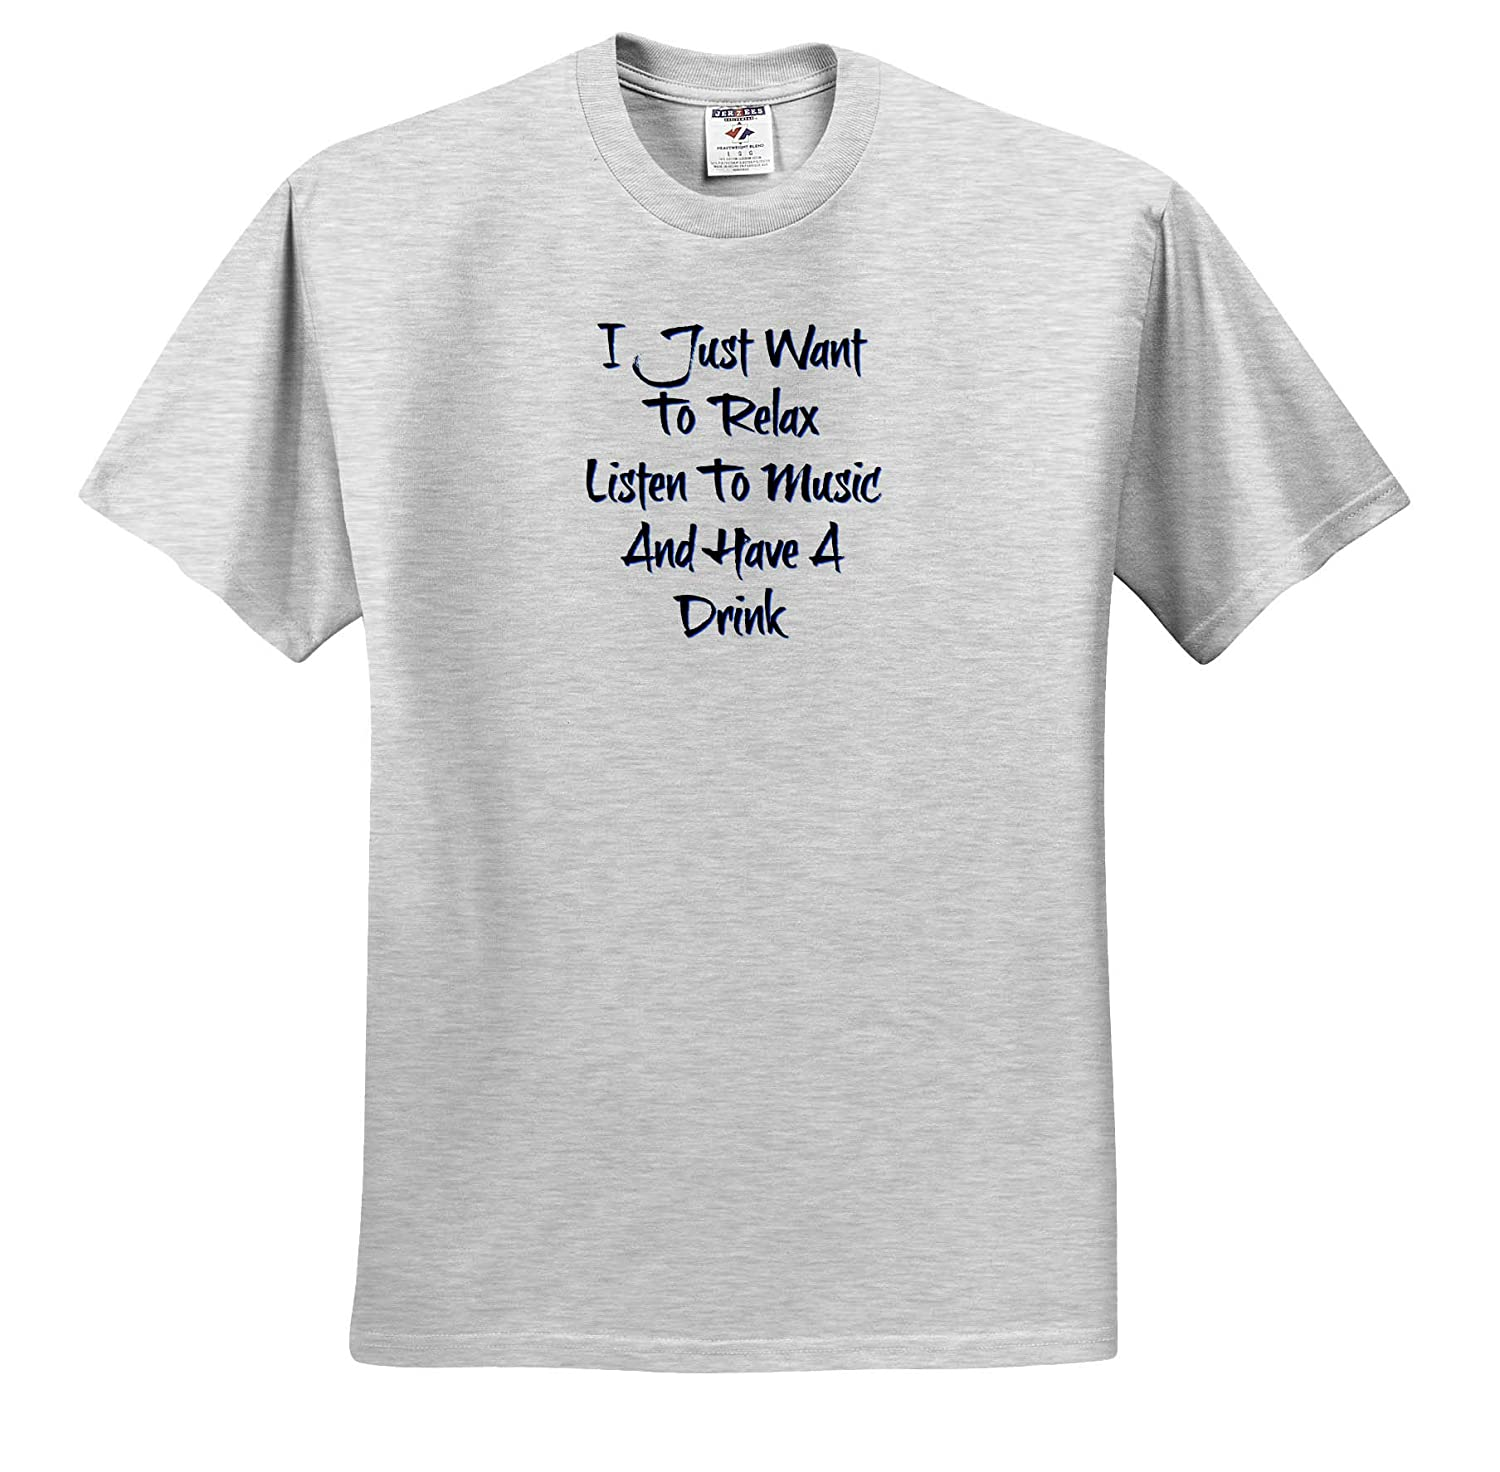 Image of I Just Want to Relax Listen to Music and Drink Adult T-Shirt XL 3dRose Carrie Merchant Quote ts/_315401